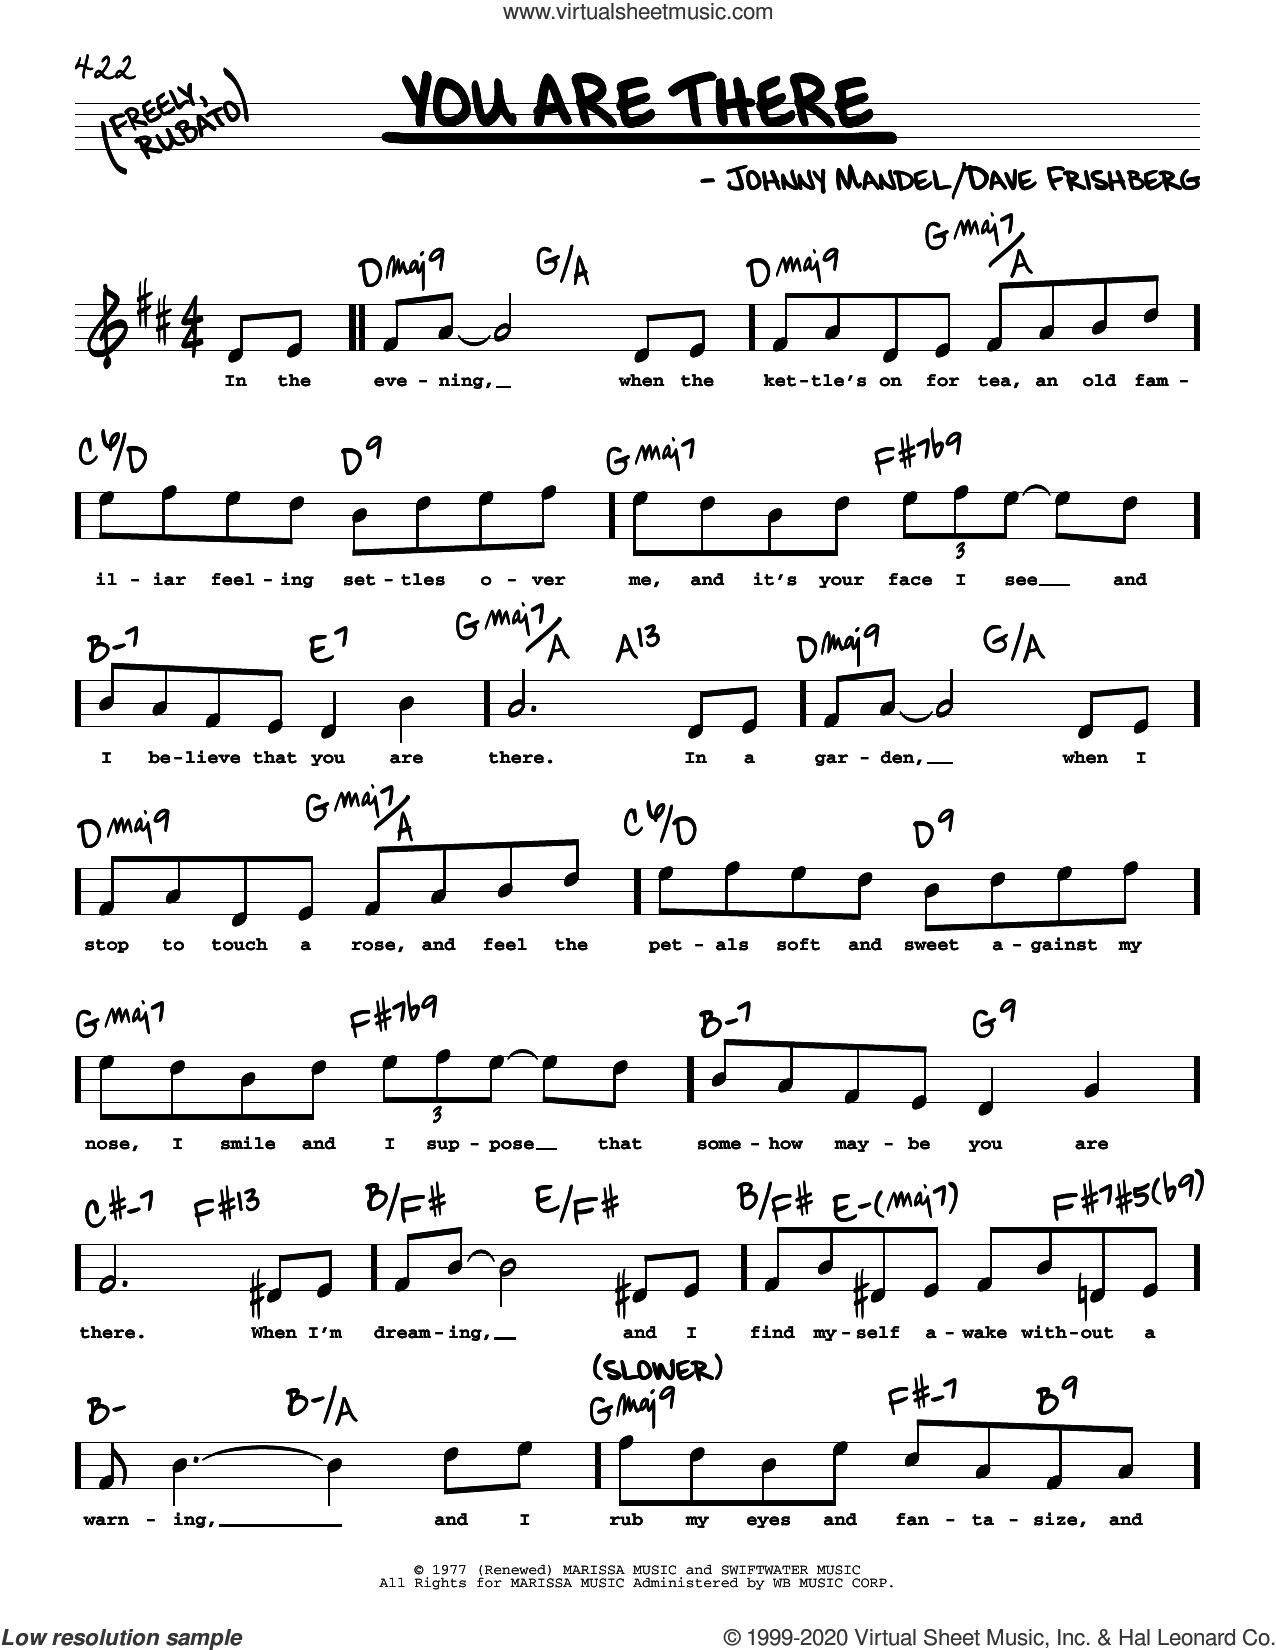 You Are There (High Voice) sheet music for voice and other instruments (high voice) by Michael Feinstein, Dave Frishberg and Johnny Mandel, intermediate skill level